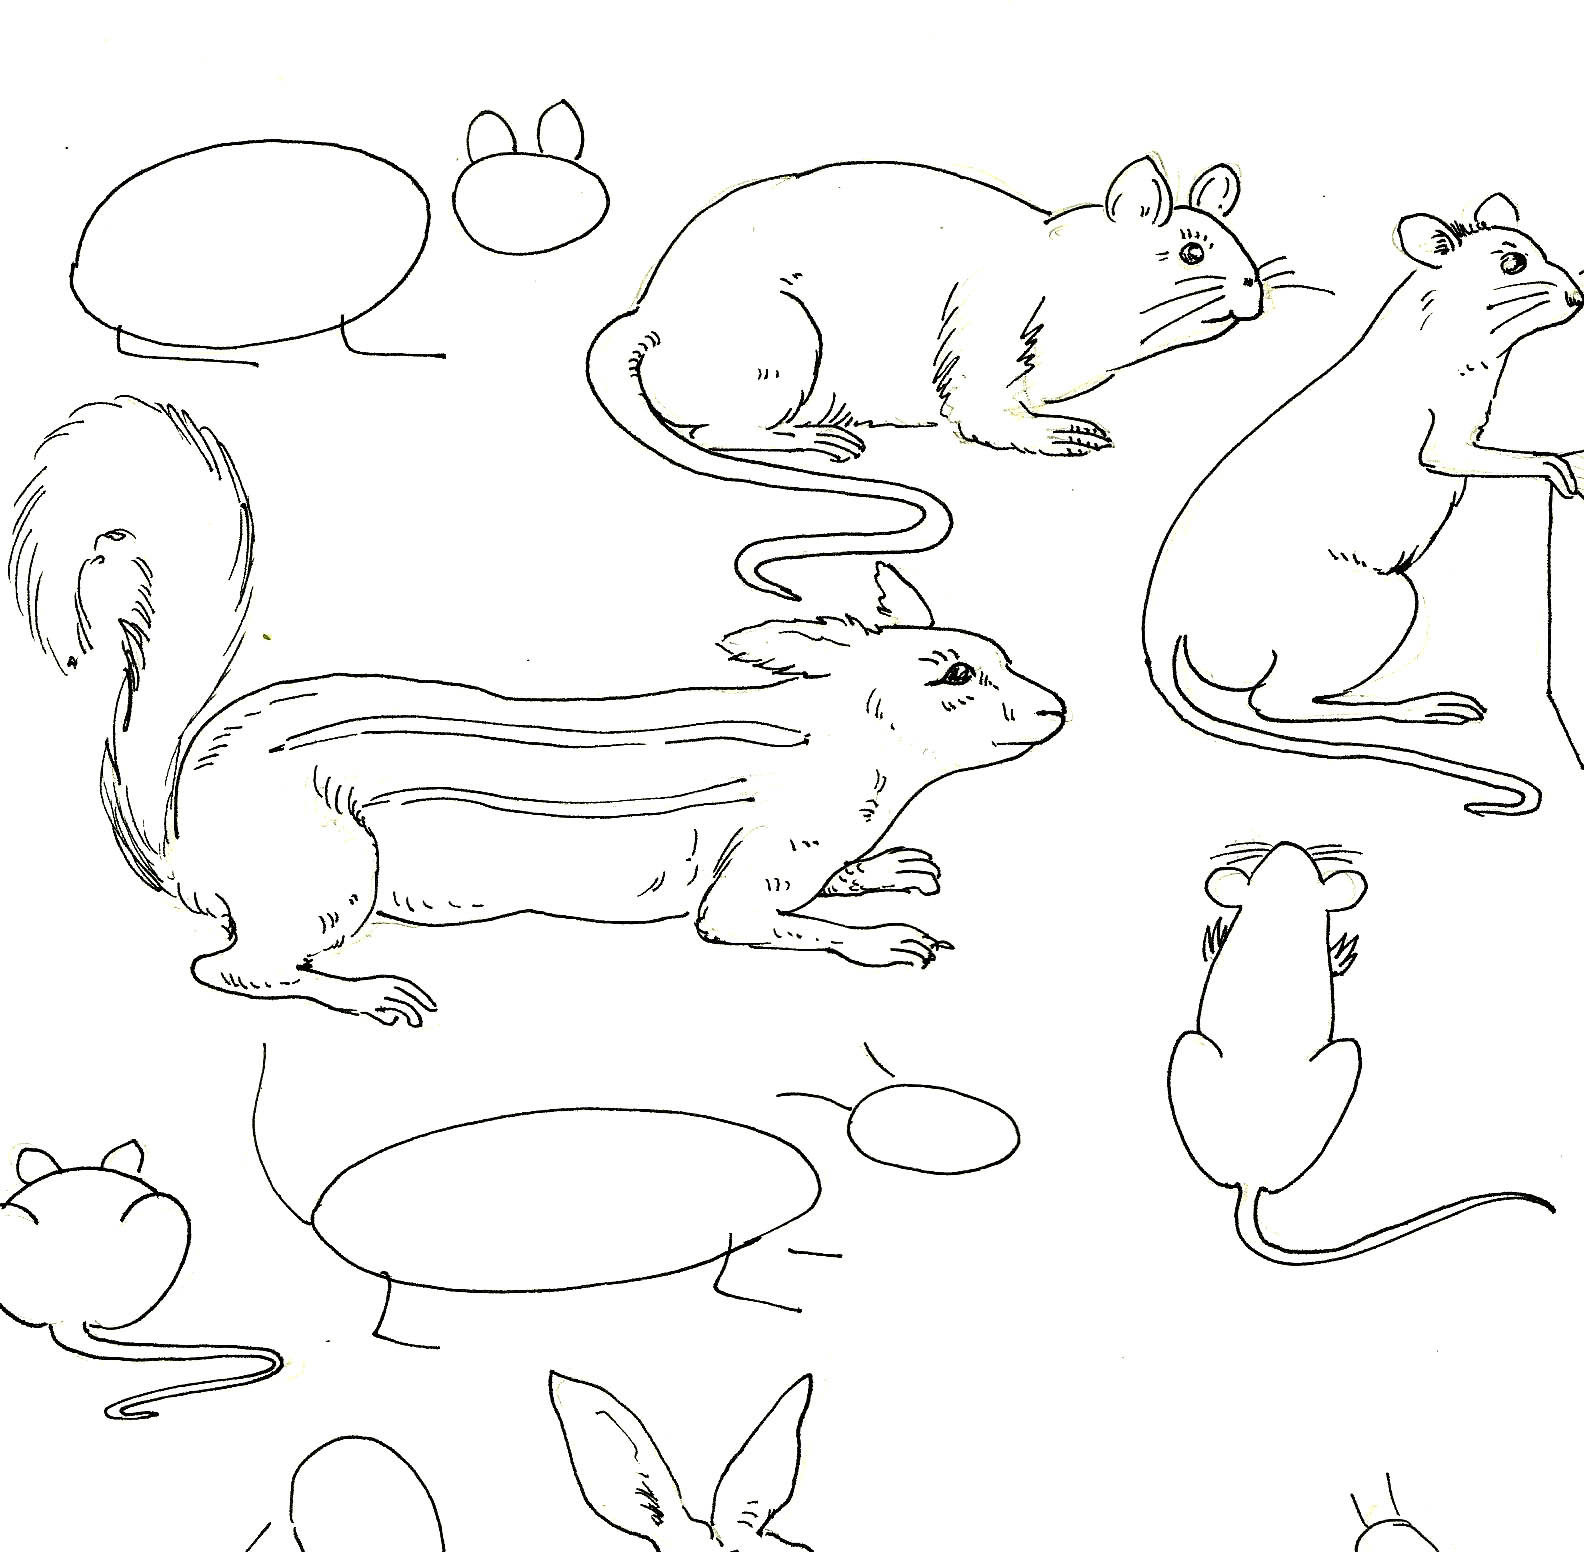 Out Line Drawing Of Animals : Studentsdrawing animal outline drawing